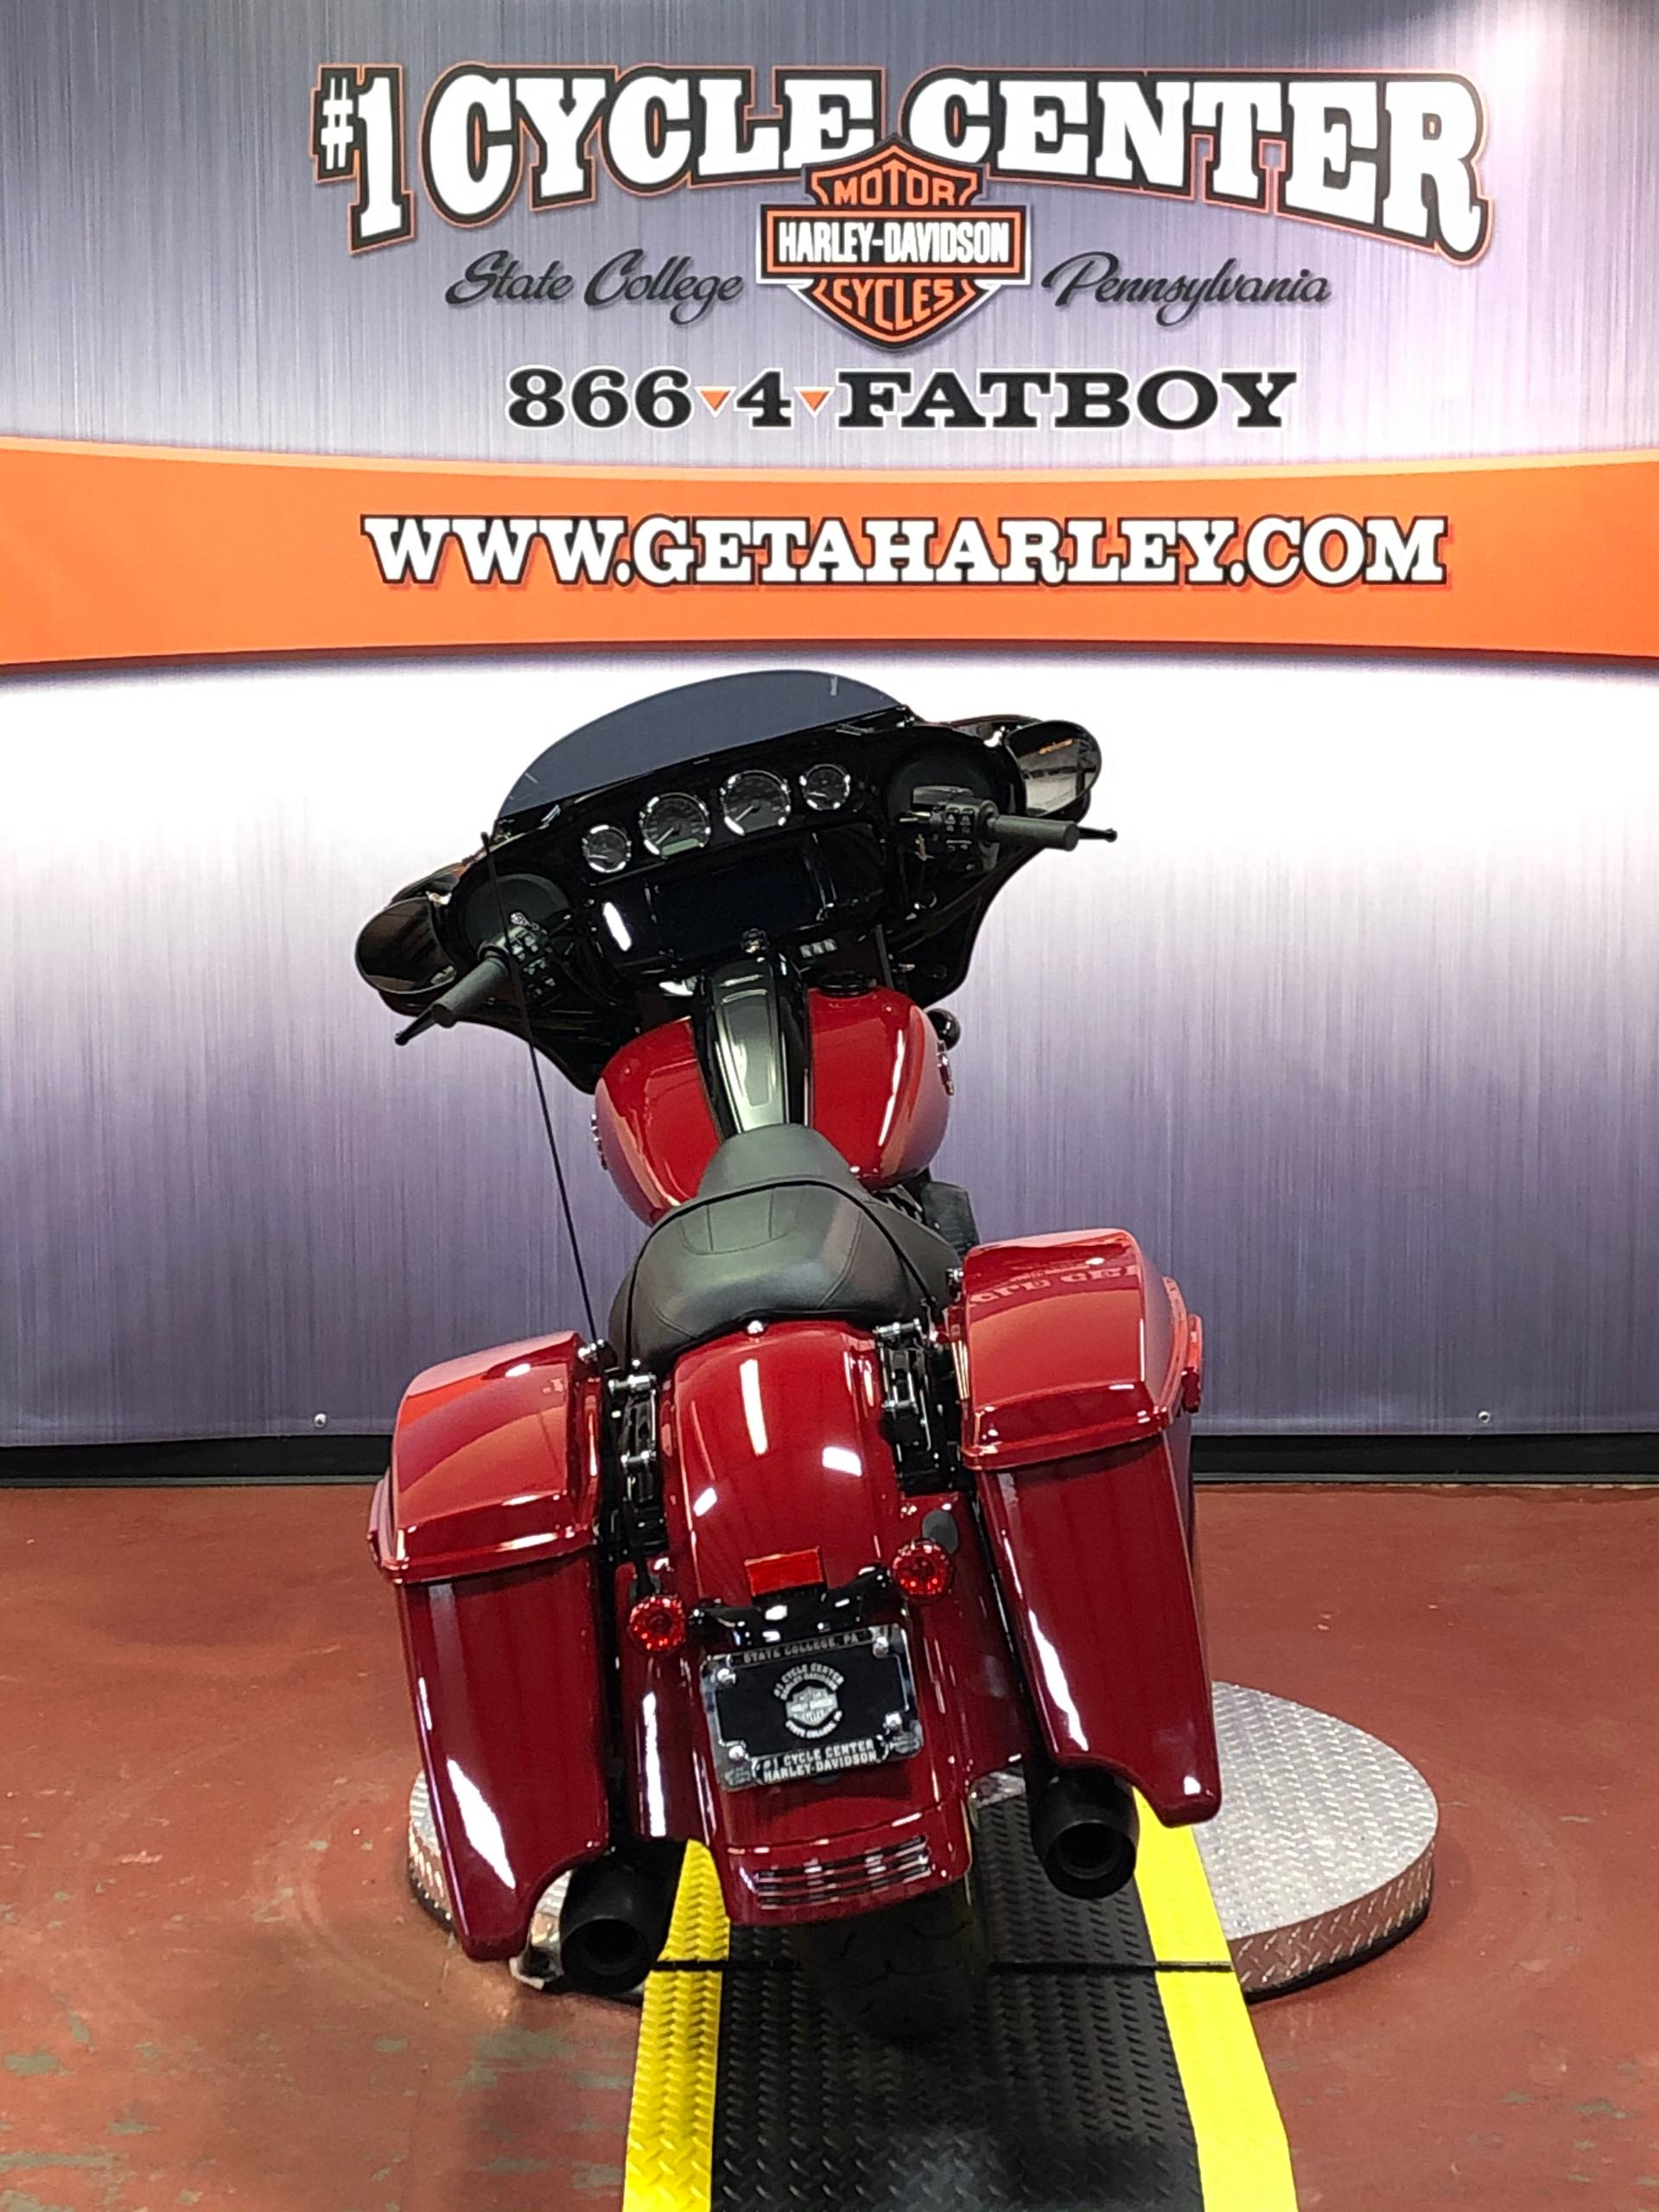 2021 Harley-Davidson Touring FLHXS Street Glide Special at #1 Cycle Center Harley-Davidson